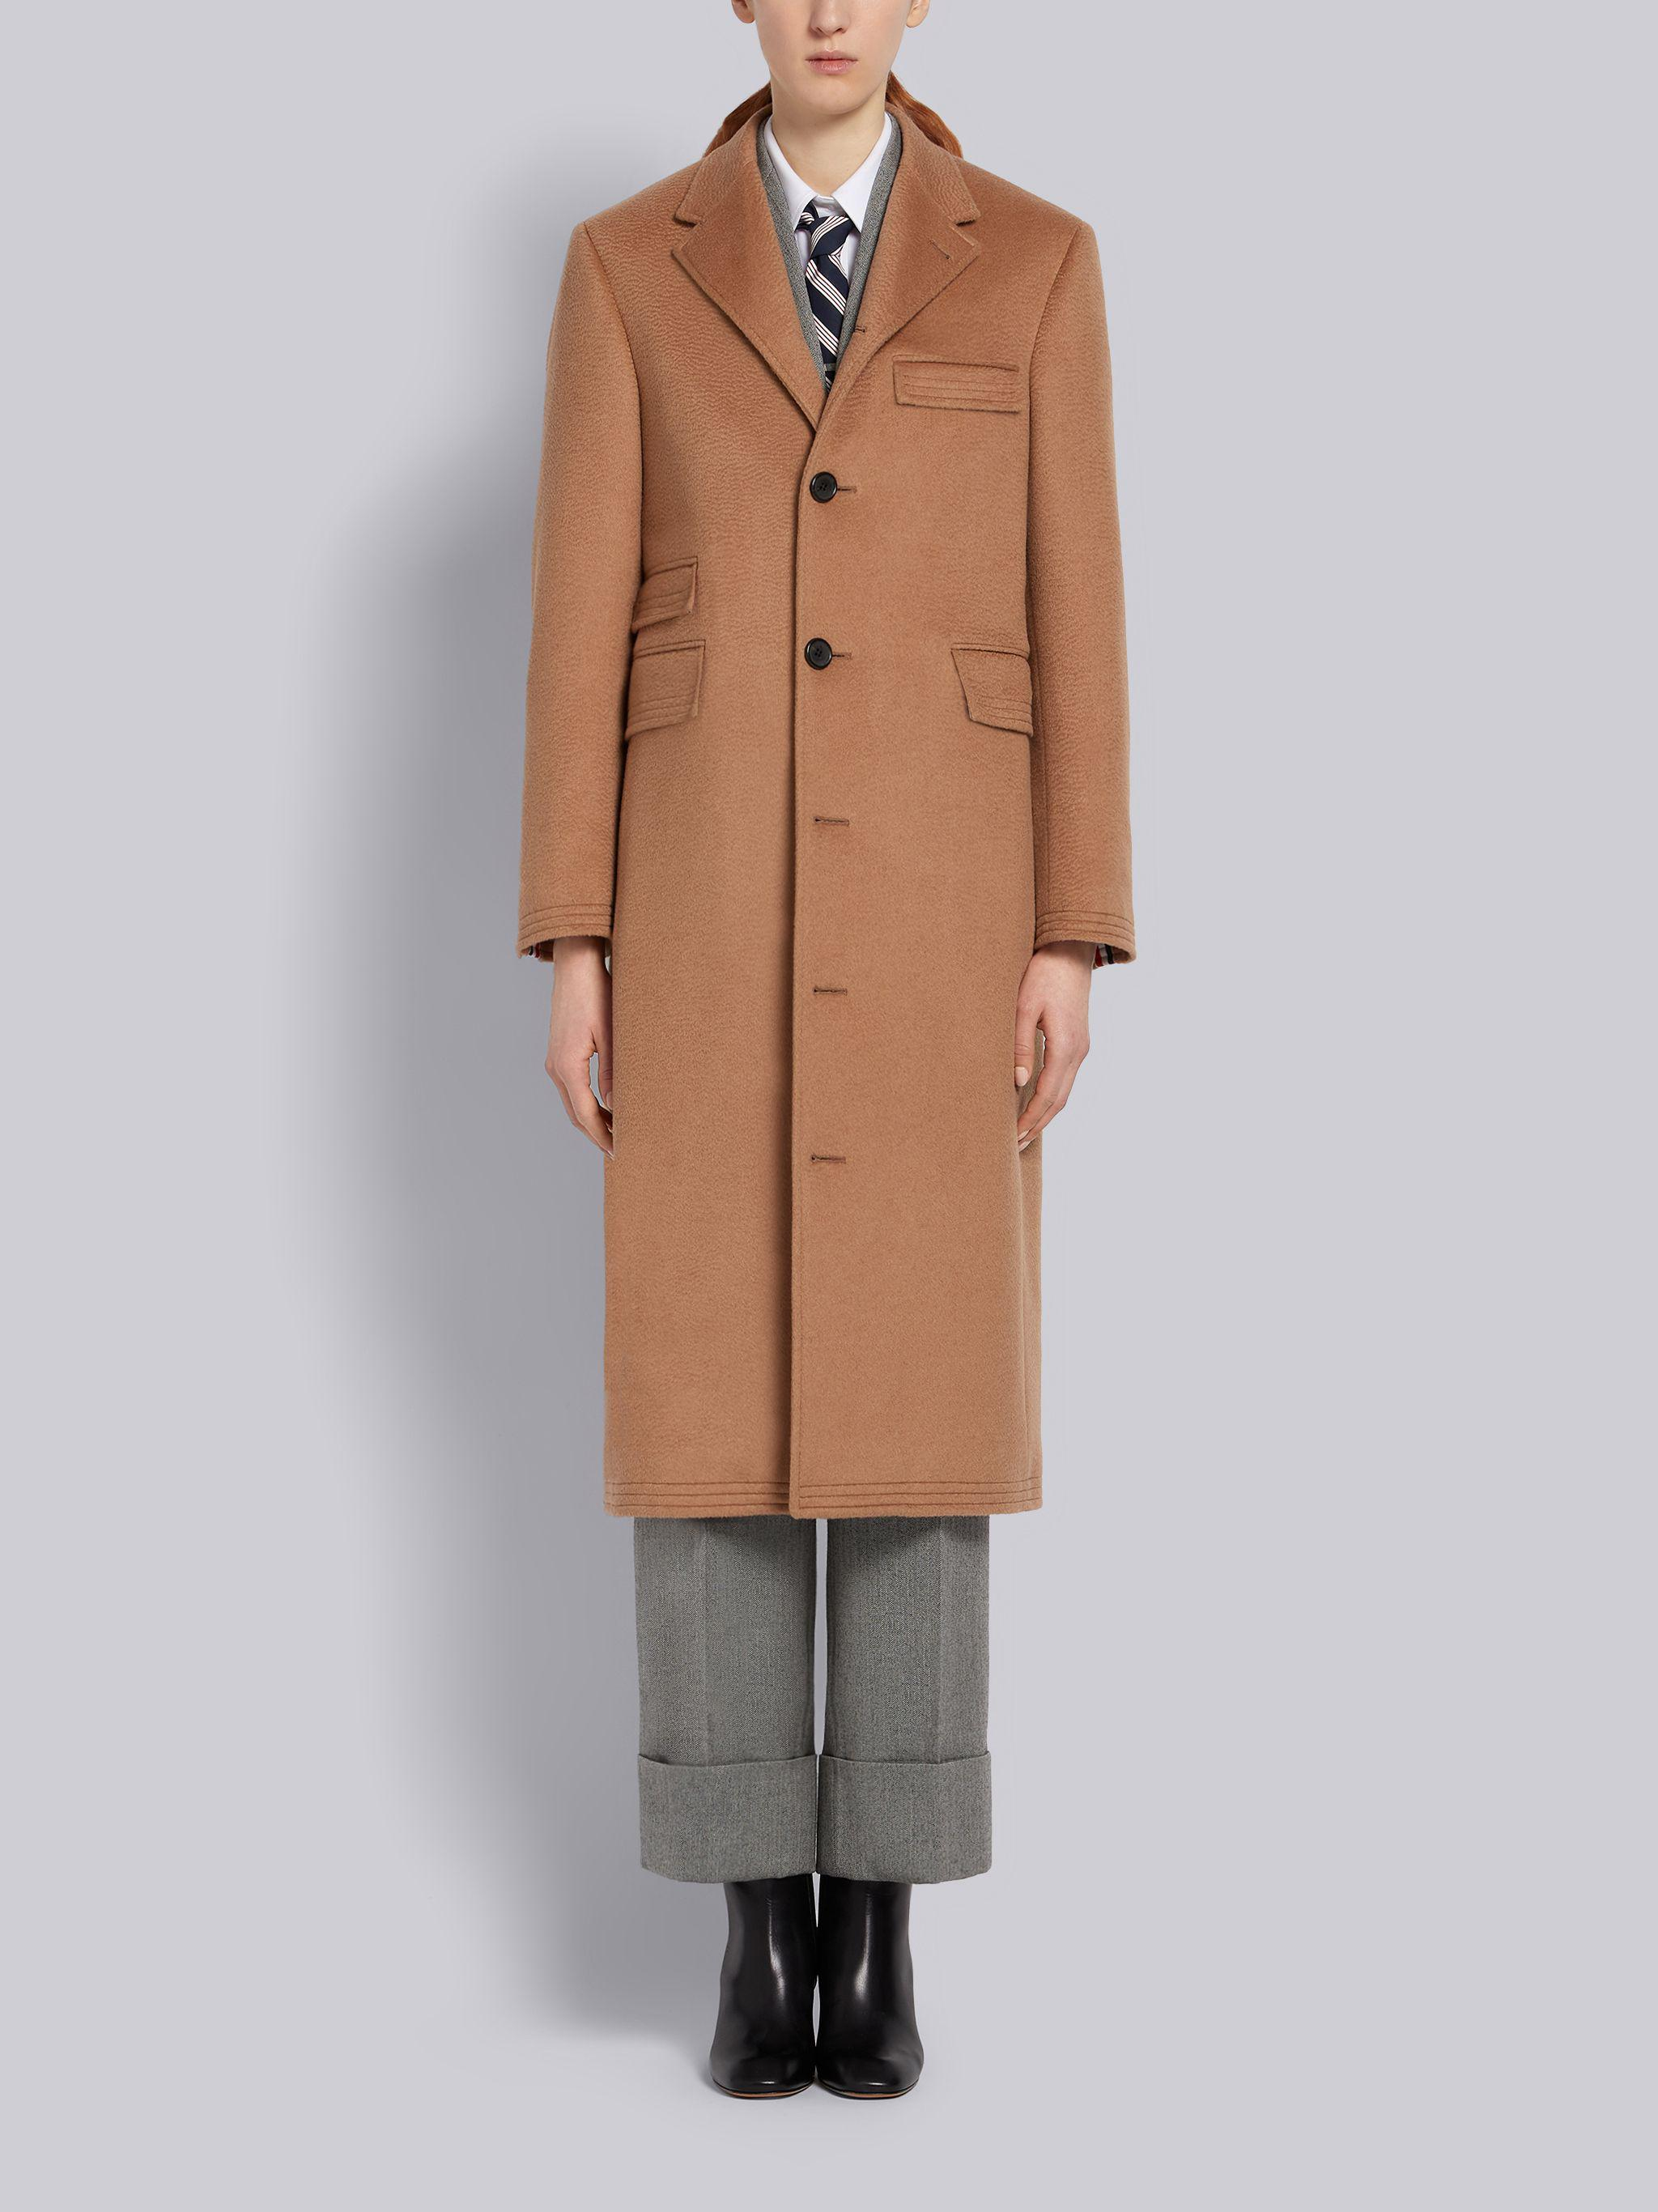 Natural Baby Camel Hair Ticket Pocket Long Chesterfield Overcoat